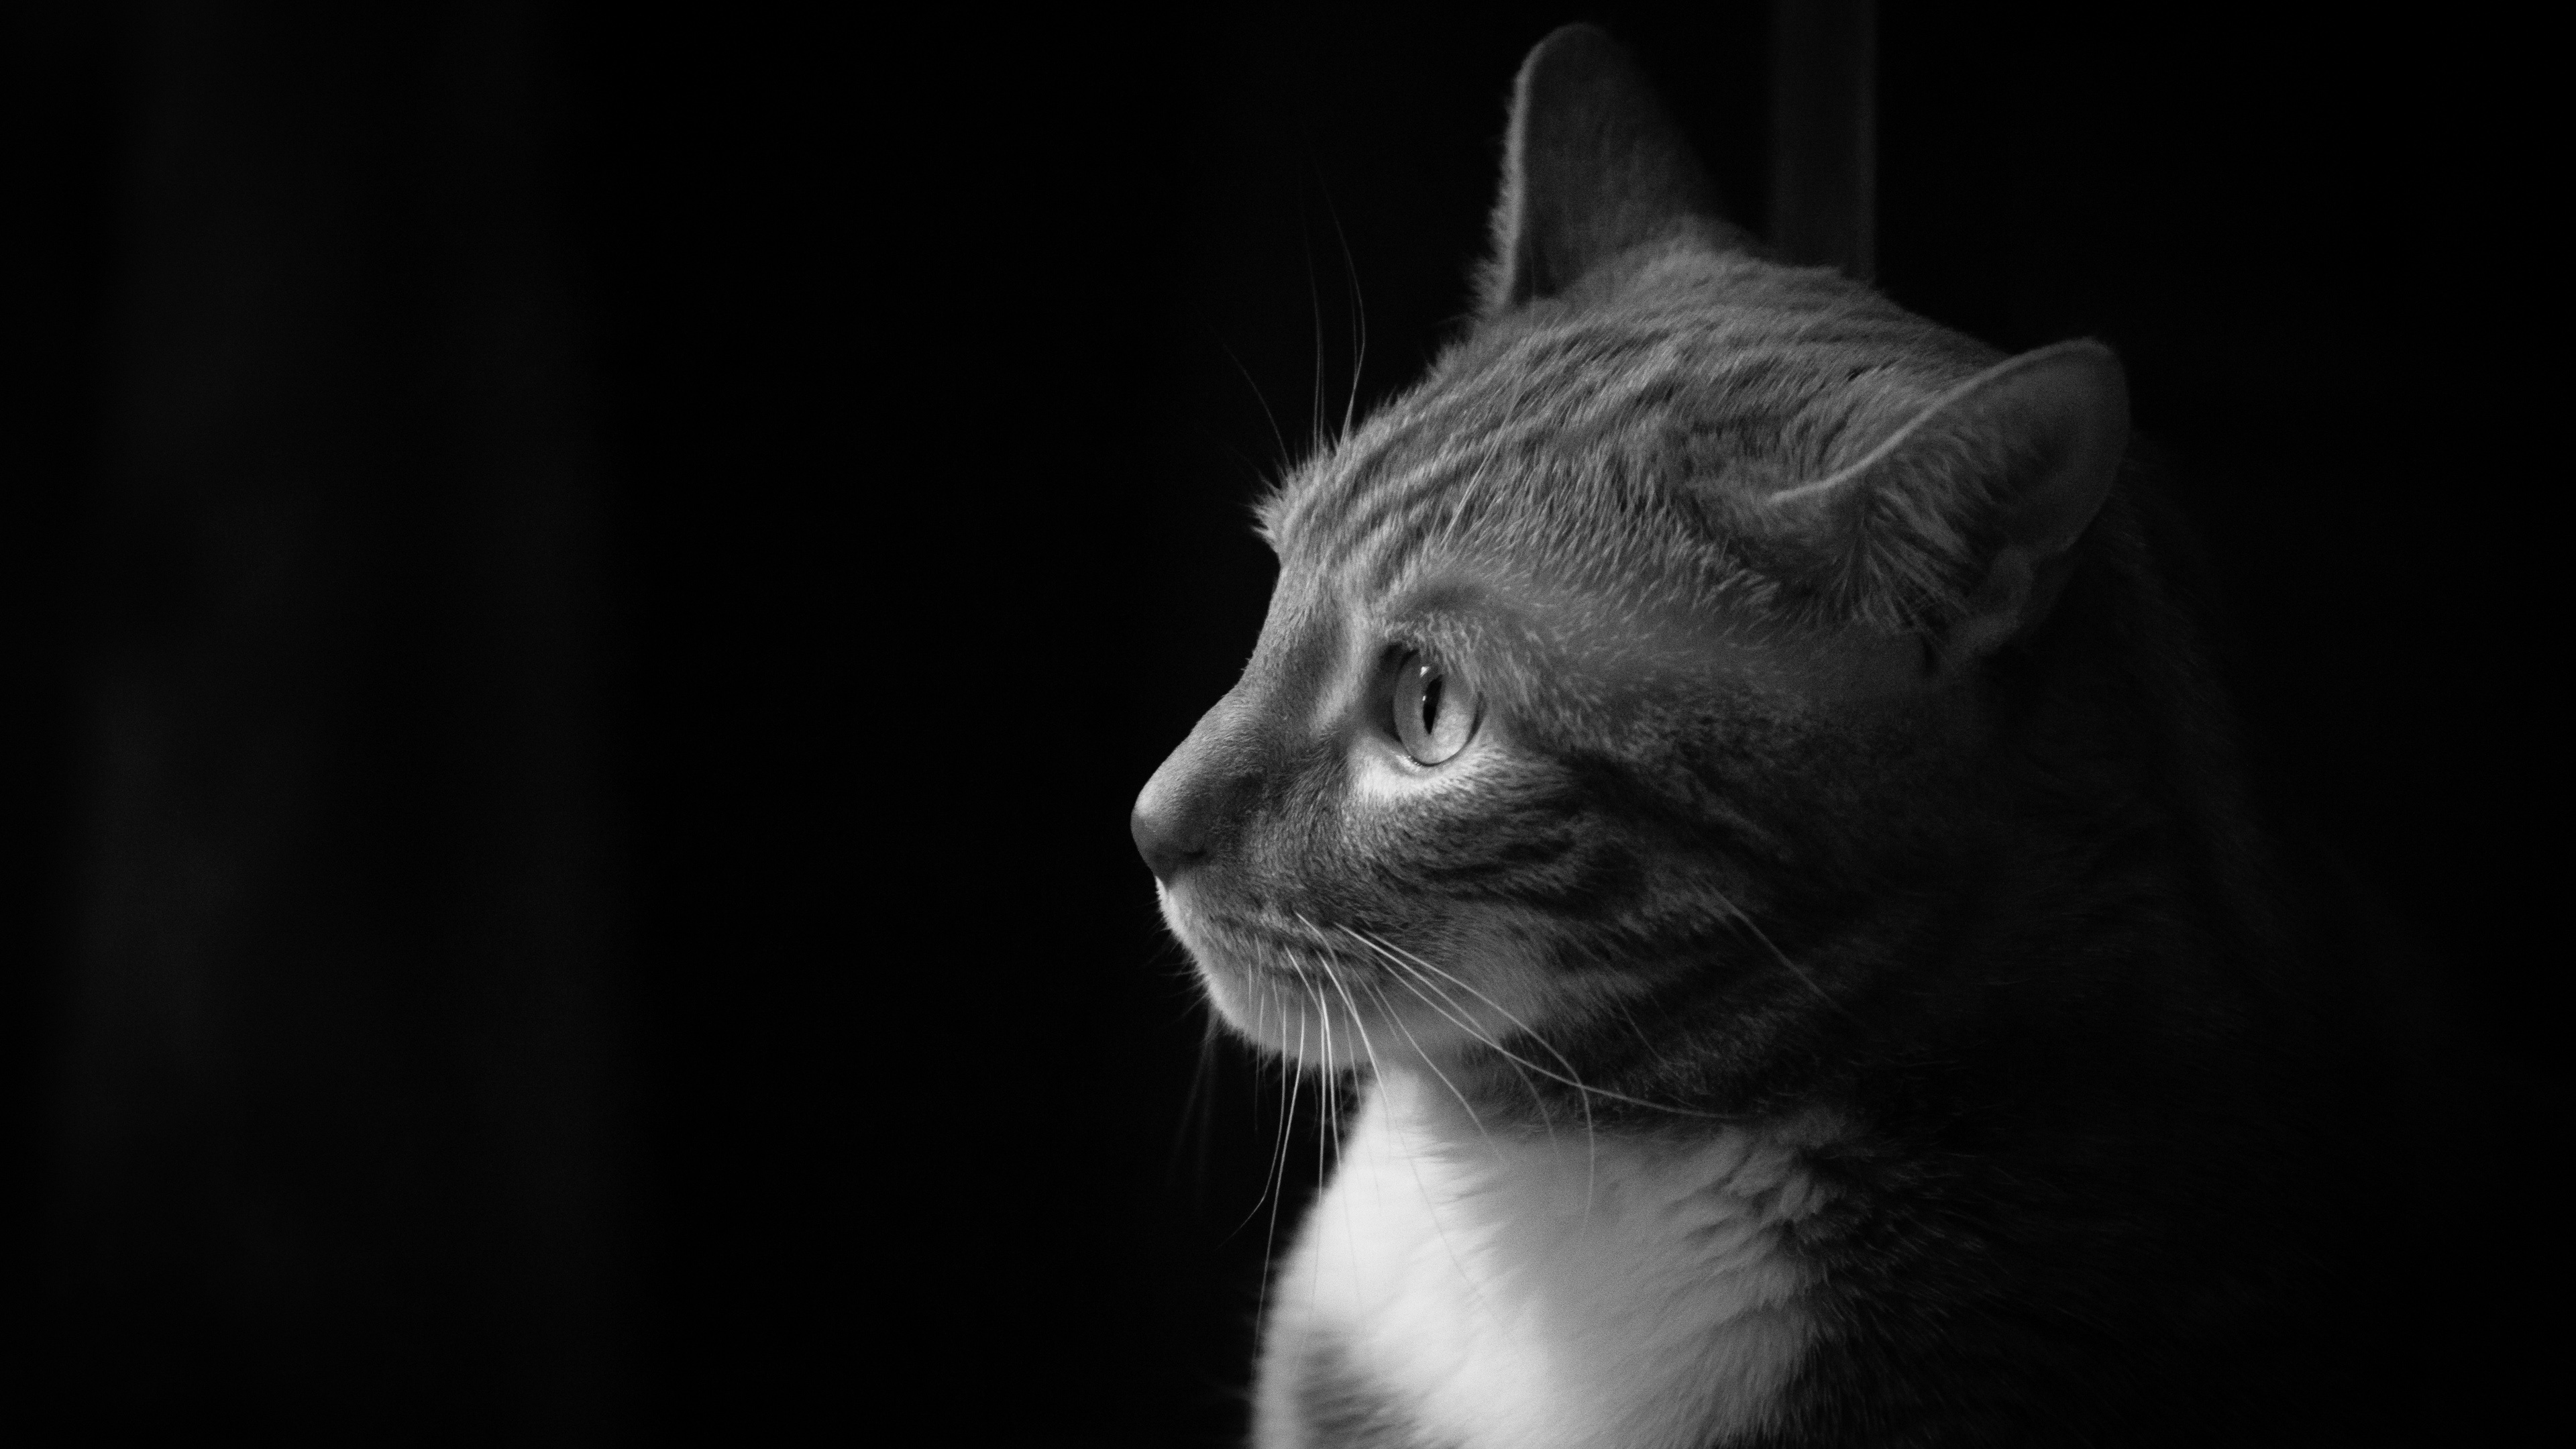 Wallpaper Cat Side View Black White Picture 3840x2160 Uhd 4k